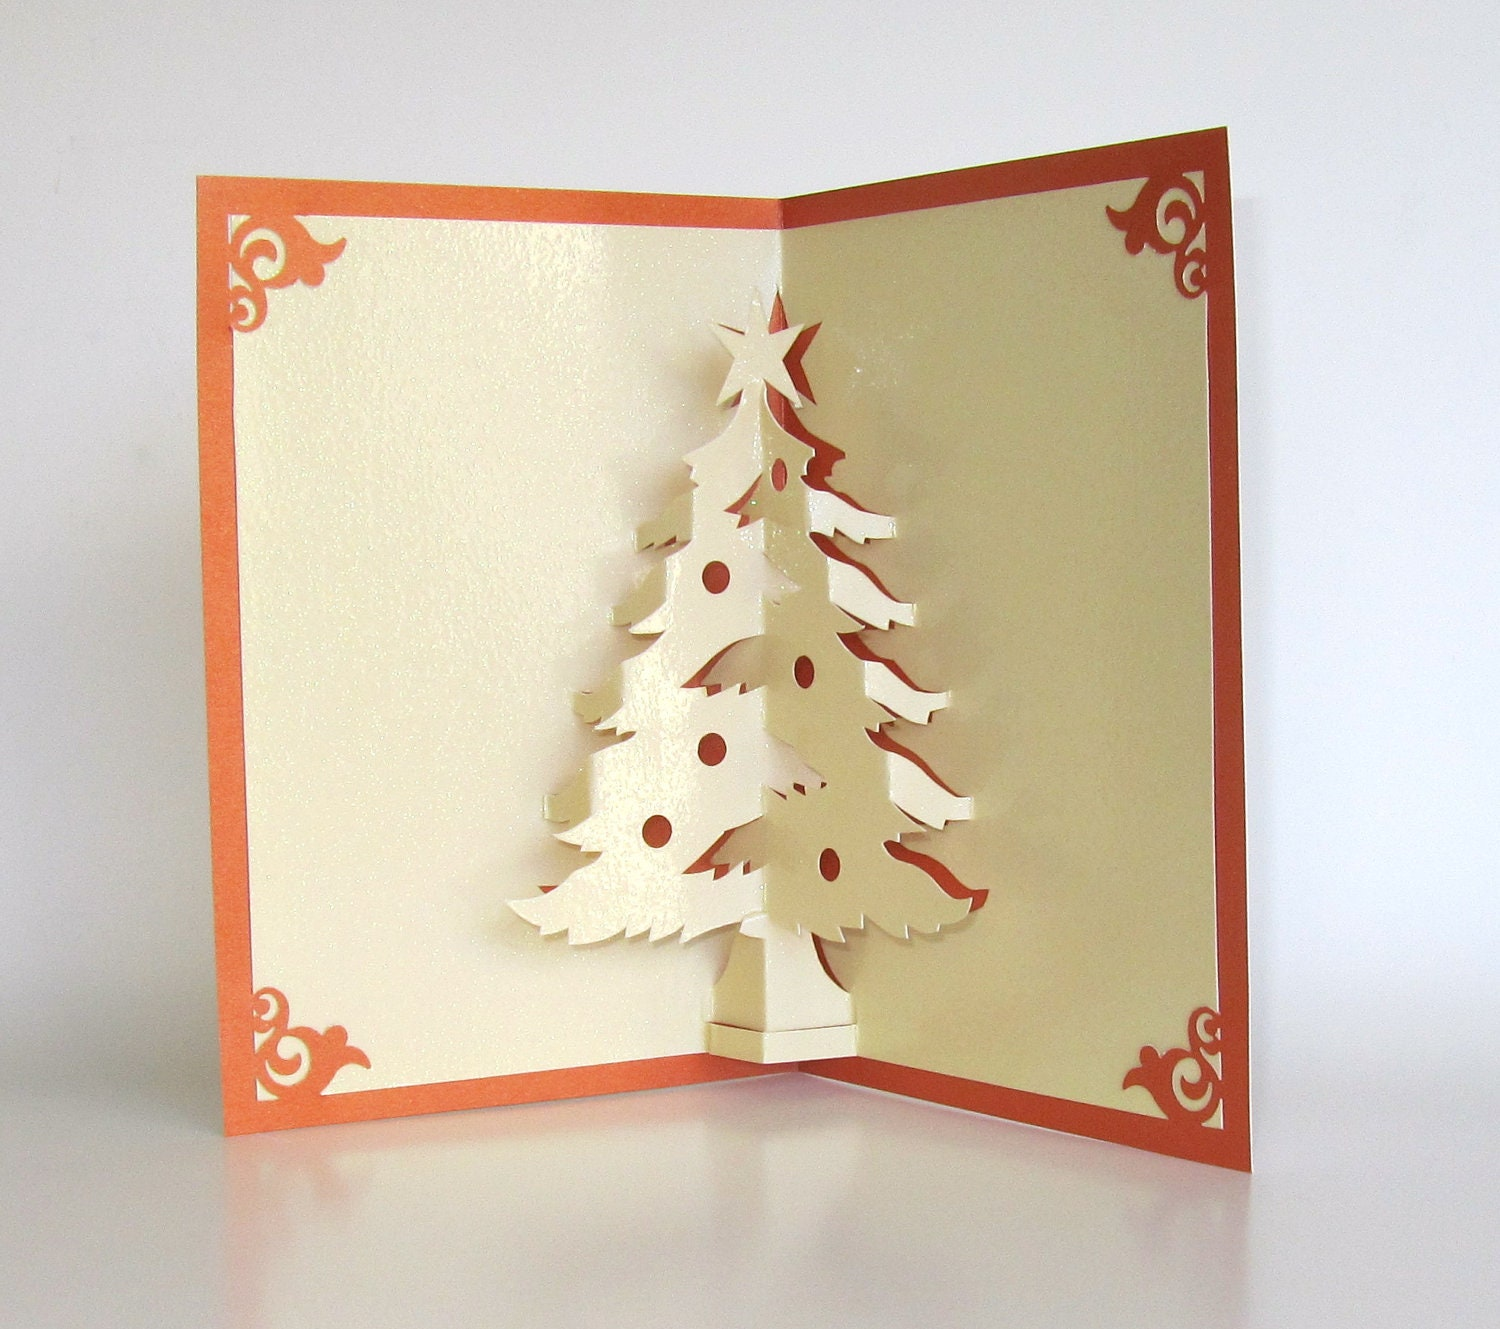 Christmas tree pop up up greeting card home dcor 3d handmade zoom kristyandbryce Image collections